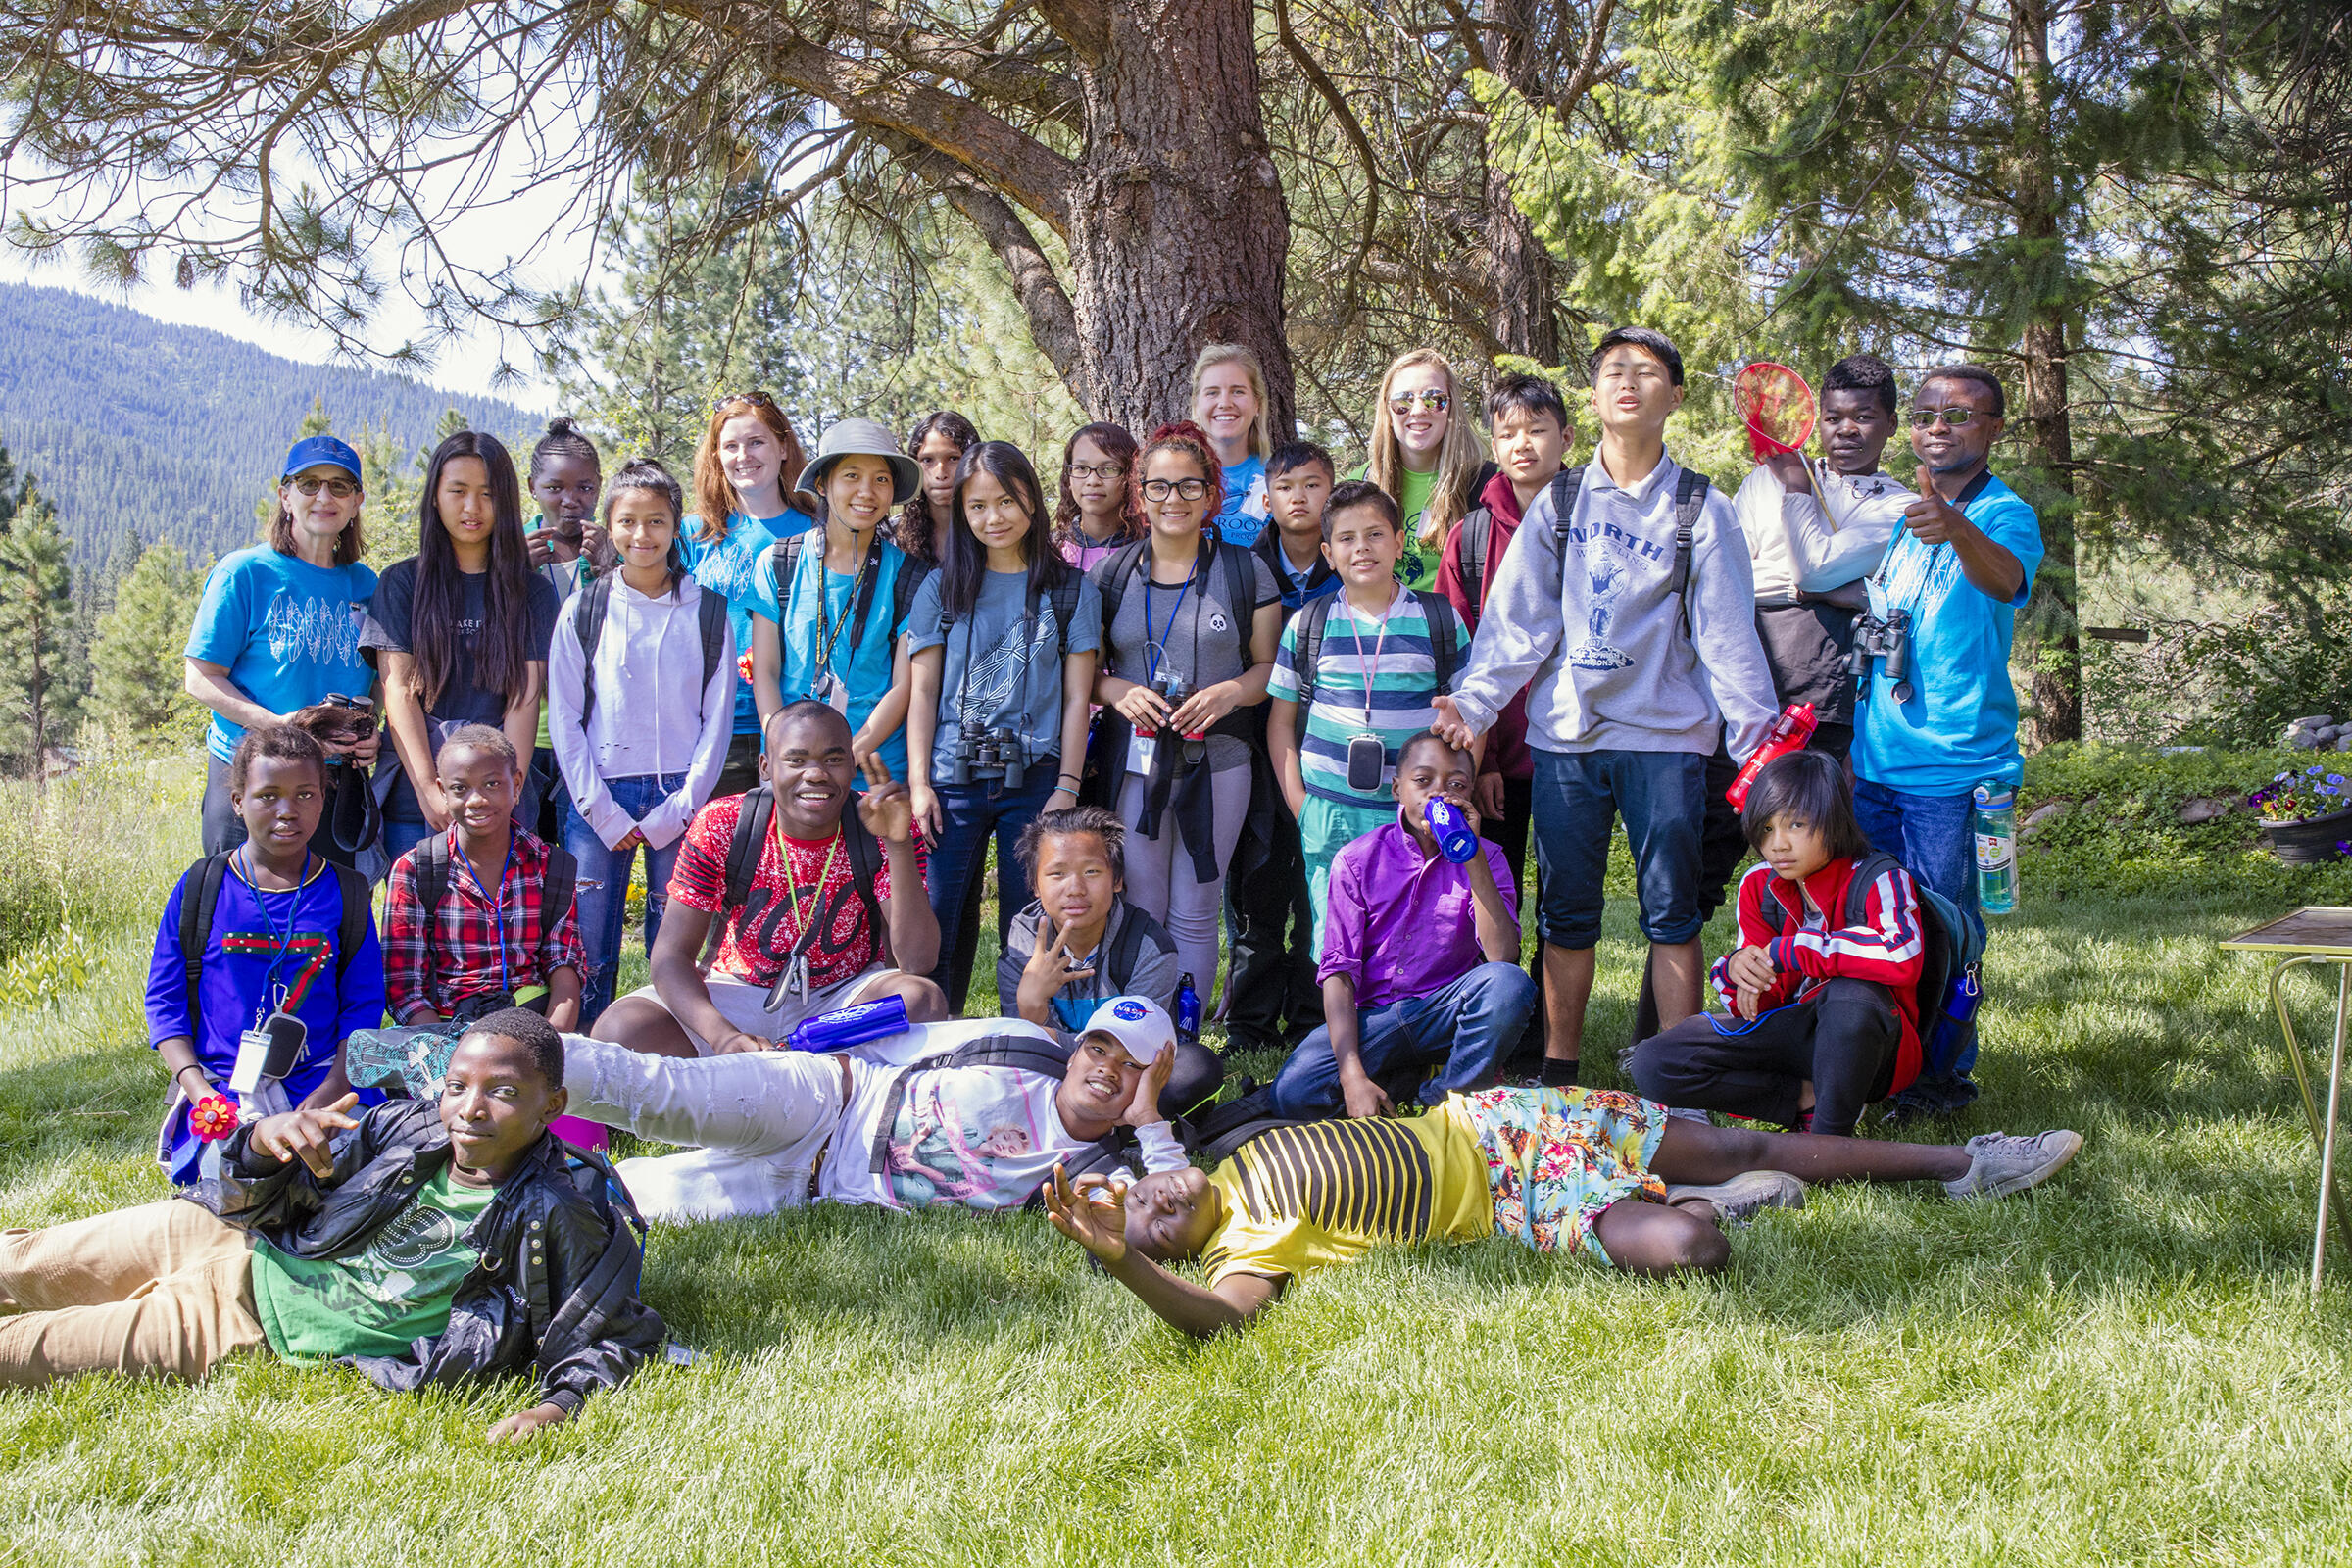 Most of the campers gather for a photo after the hummingbird banding lesson on day two of the program. Mike Fernandez/Audubon